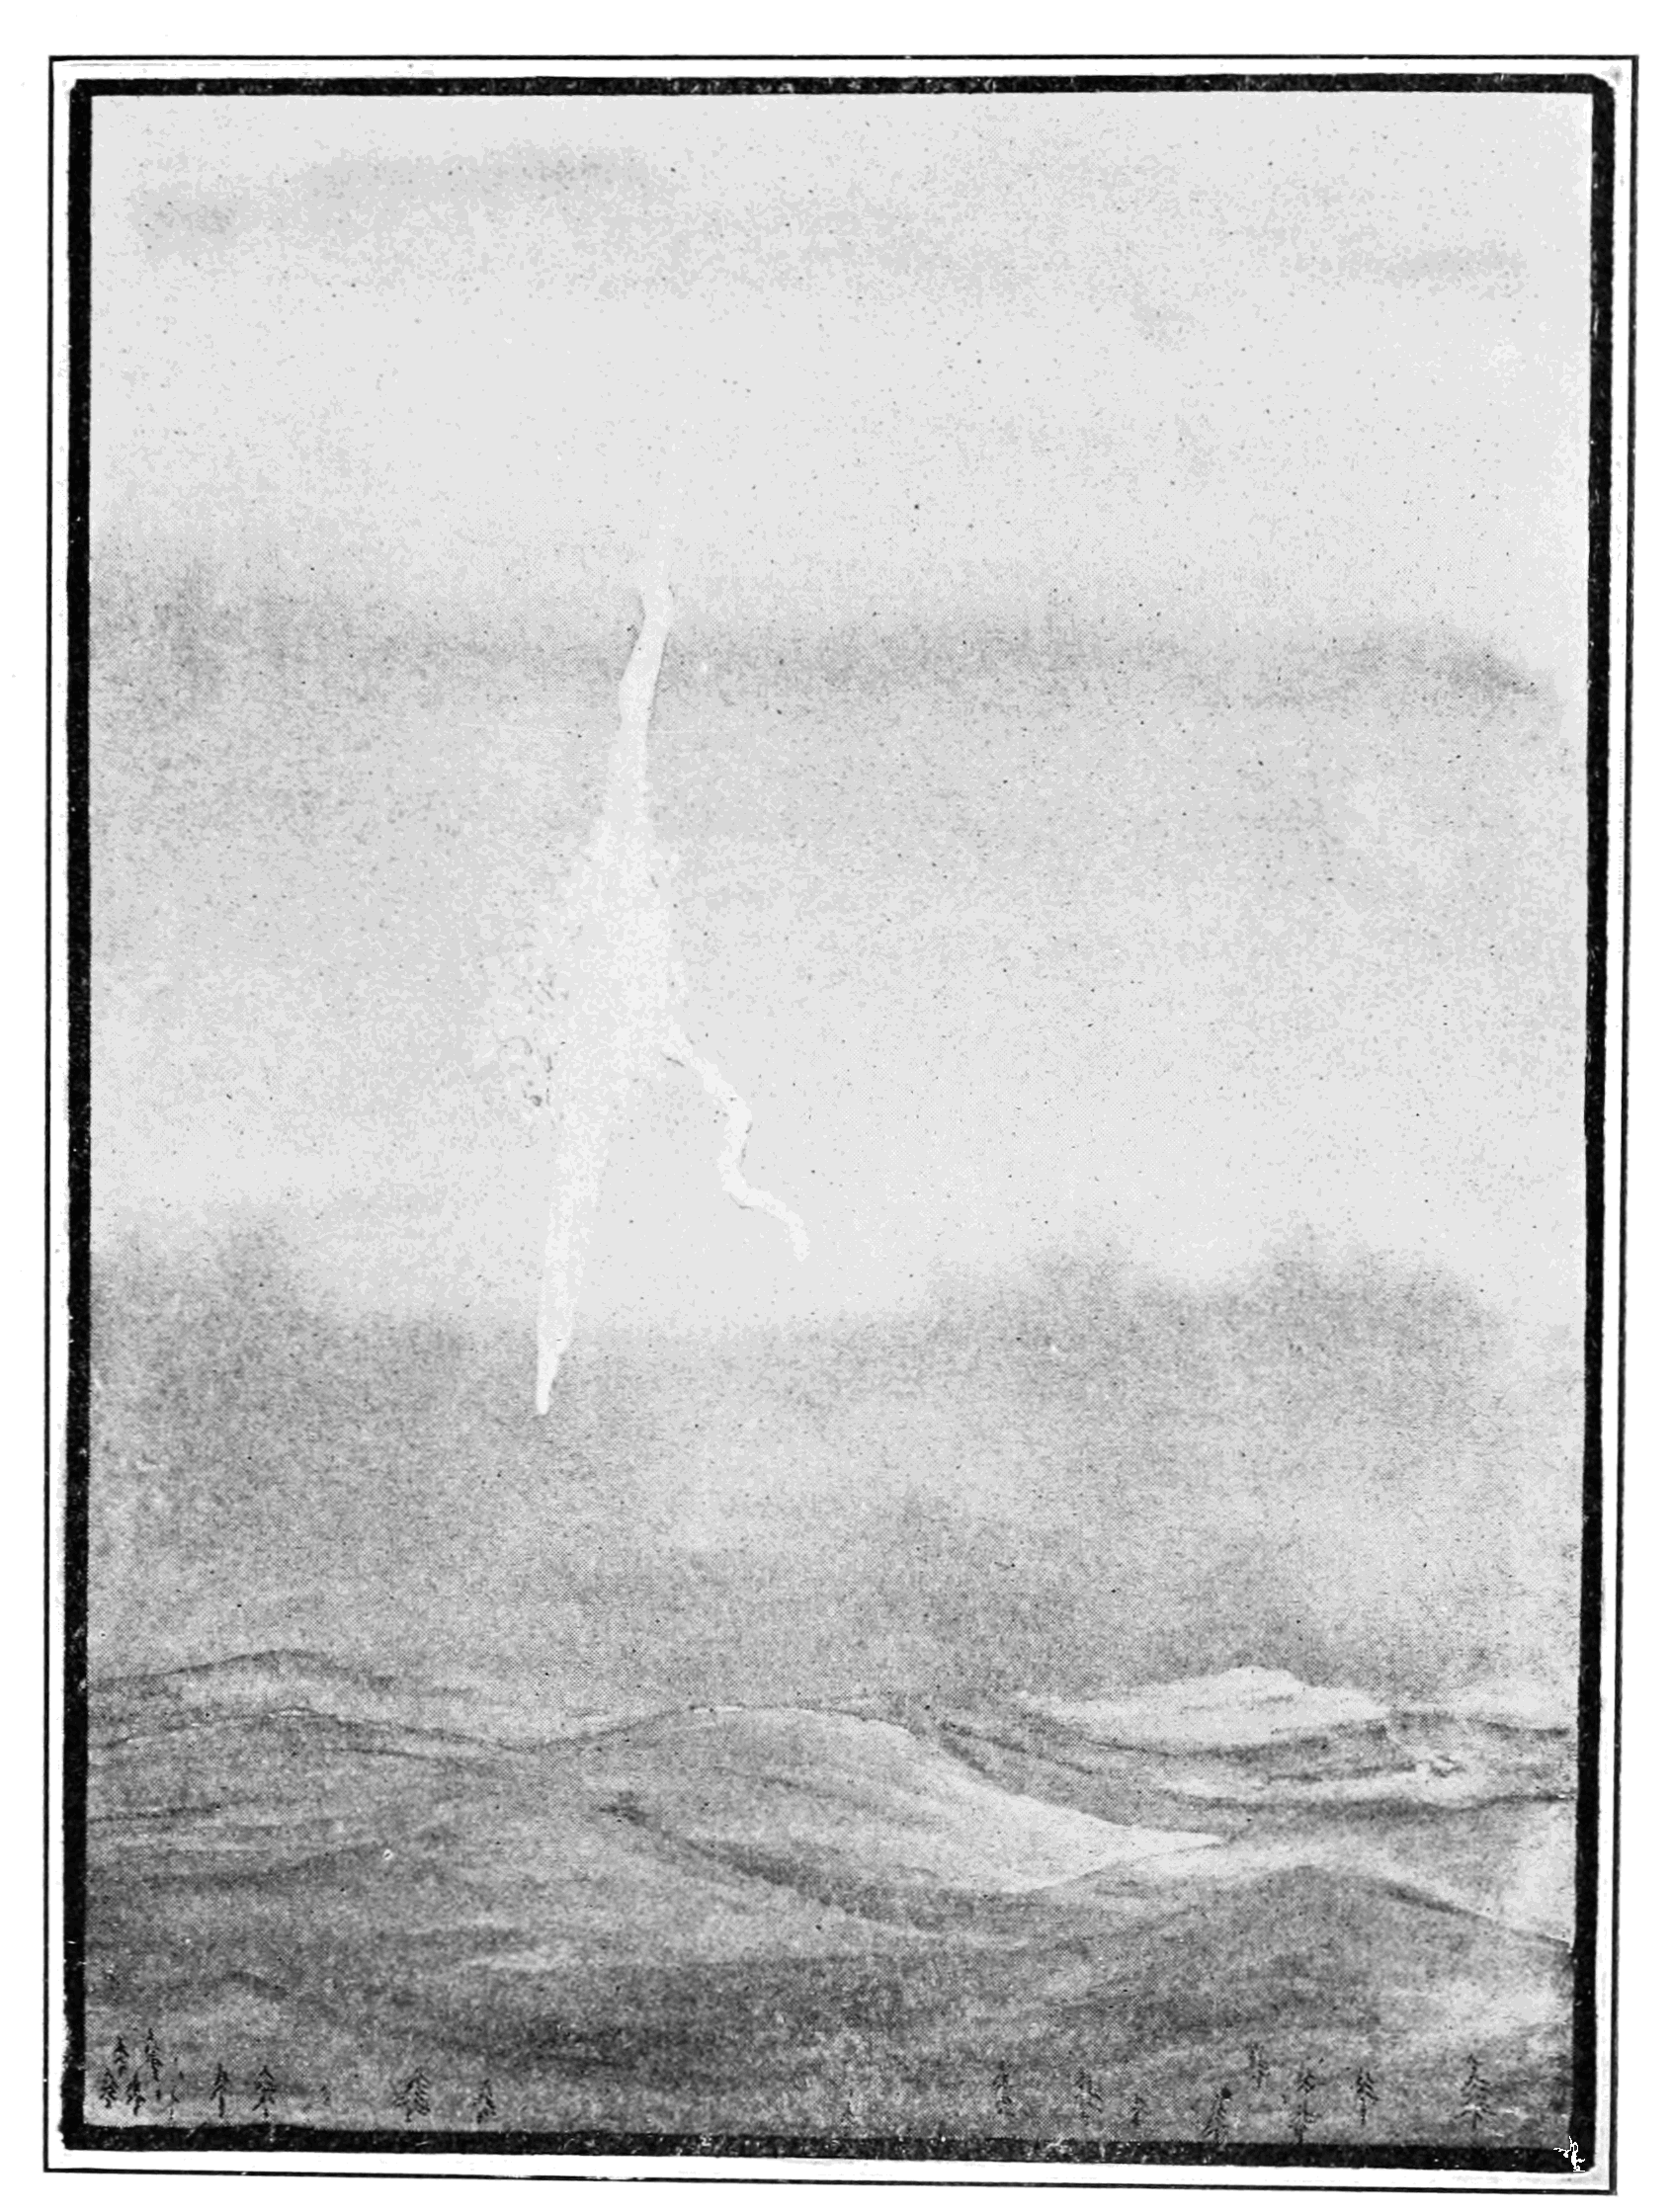 PSM V79 D201 Daylight train of a detonating meteor by lick observatory jul 26 1896.png